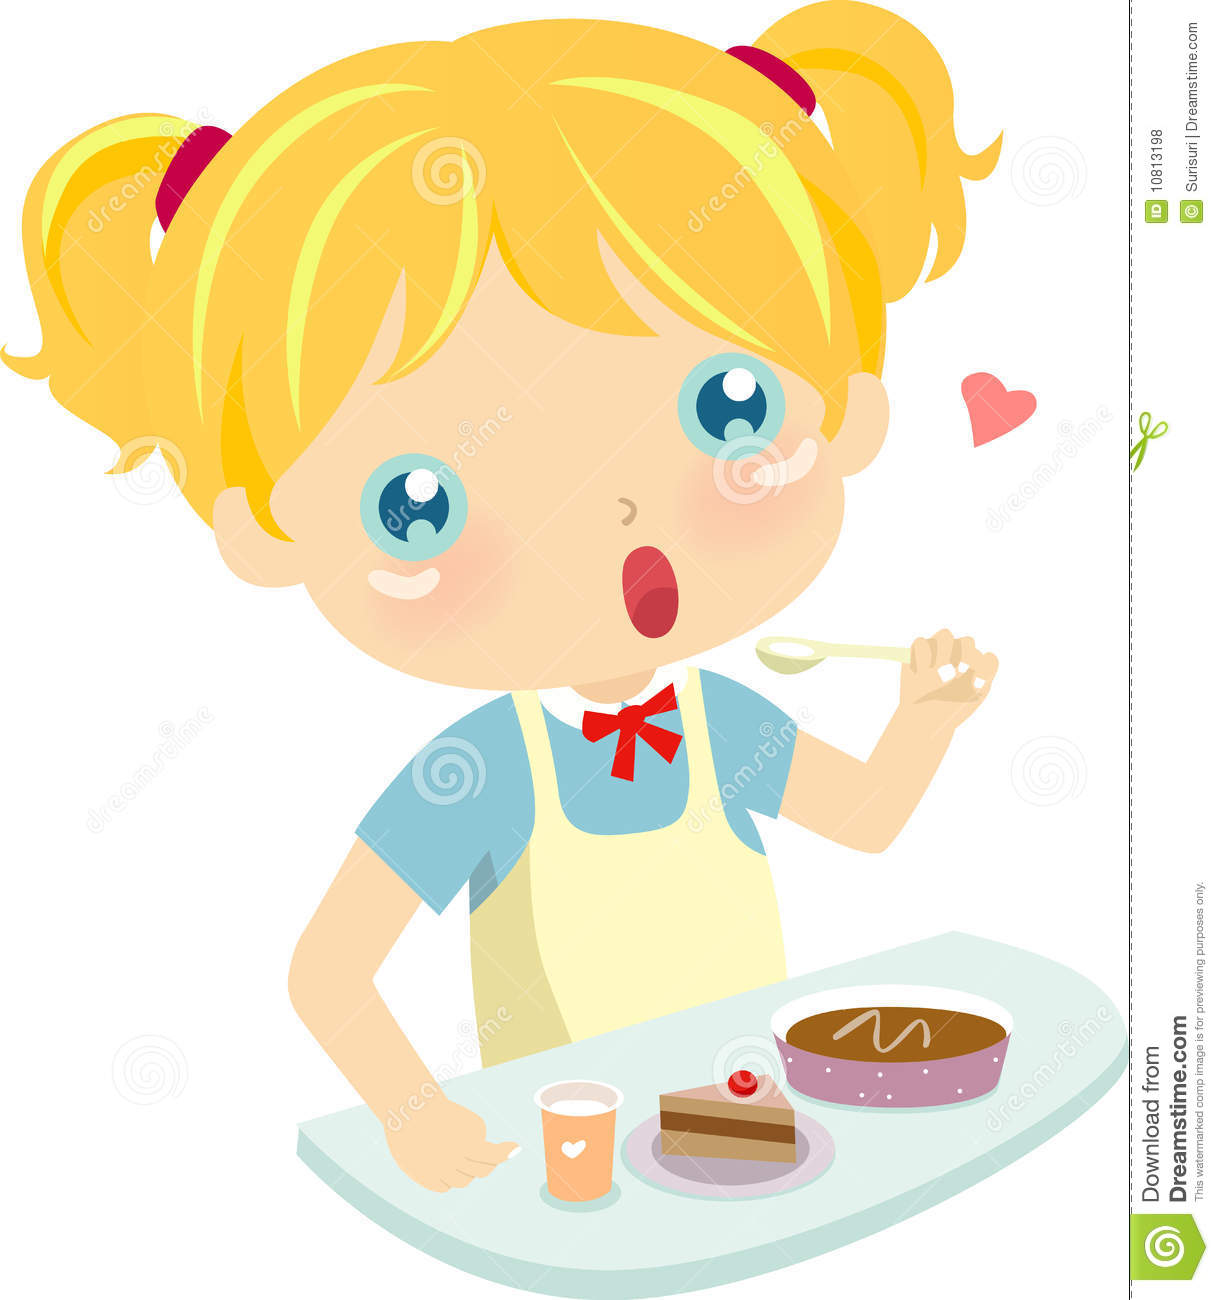 Eating Cake Clipart - Clipart Suggest